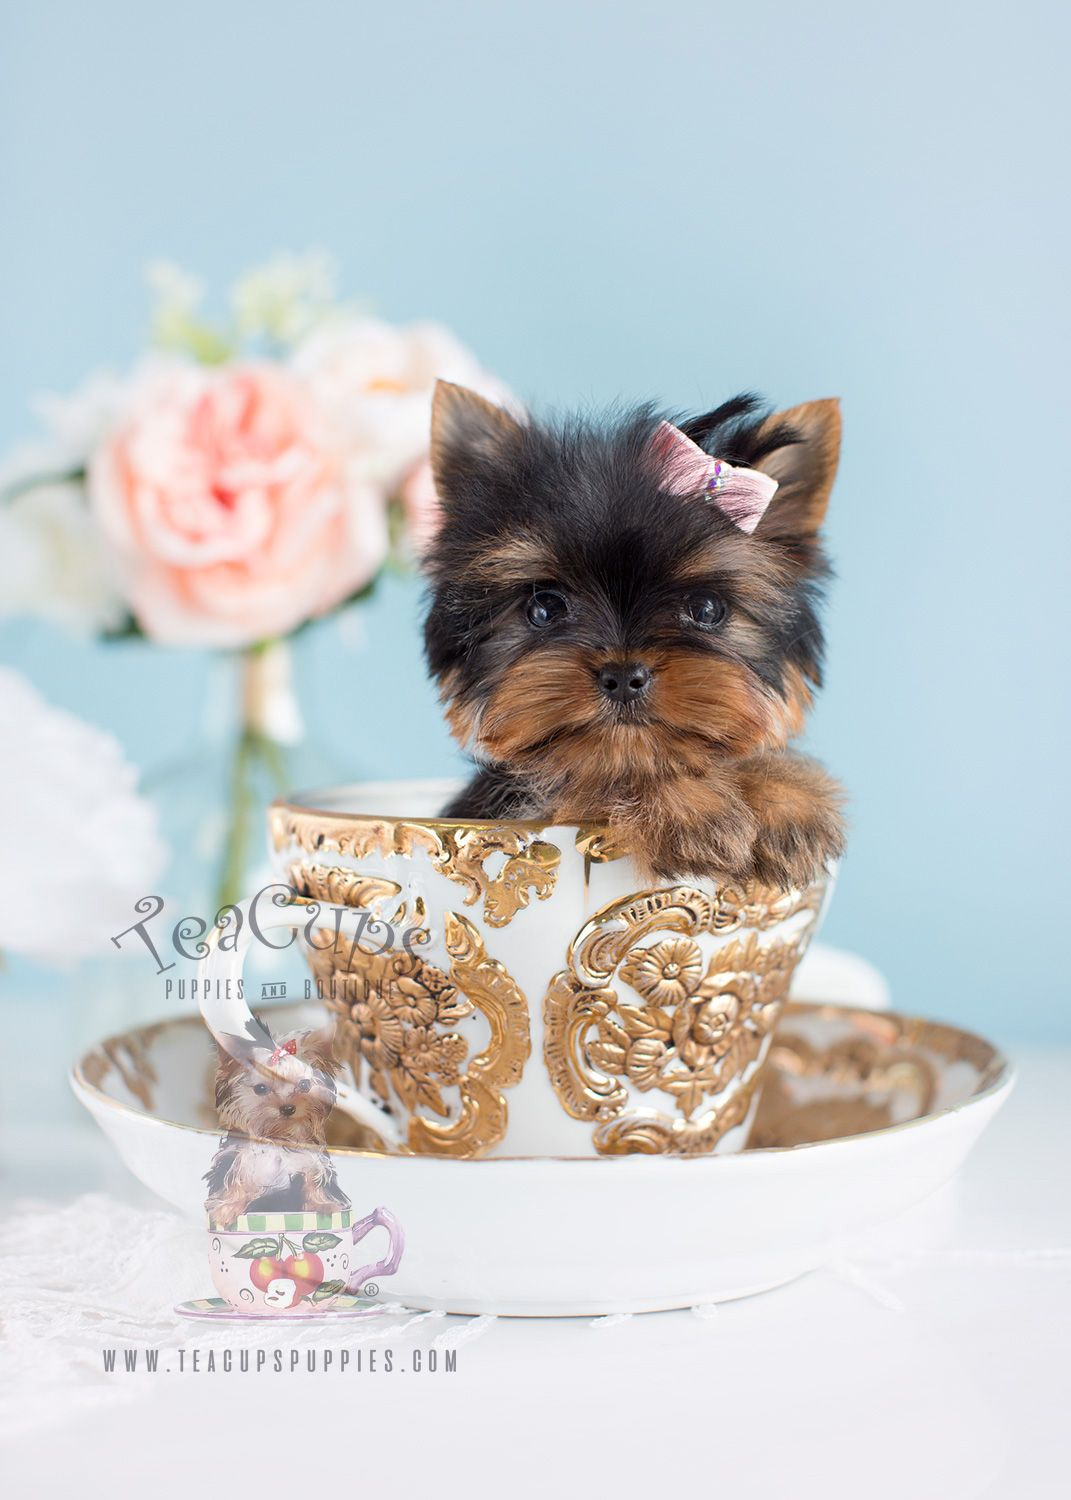 Micro Tea Cup Yorkie Puppy By Teacupspuppies Com Teacupyorkie Yorkie Yorkiepuppy Yorkiebreeder Microteacu Yorkie Puppy Teacup Puppies Teacup Yorkie Puppy